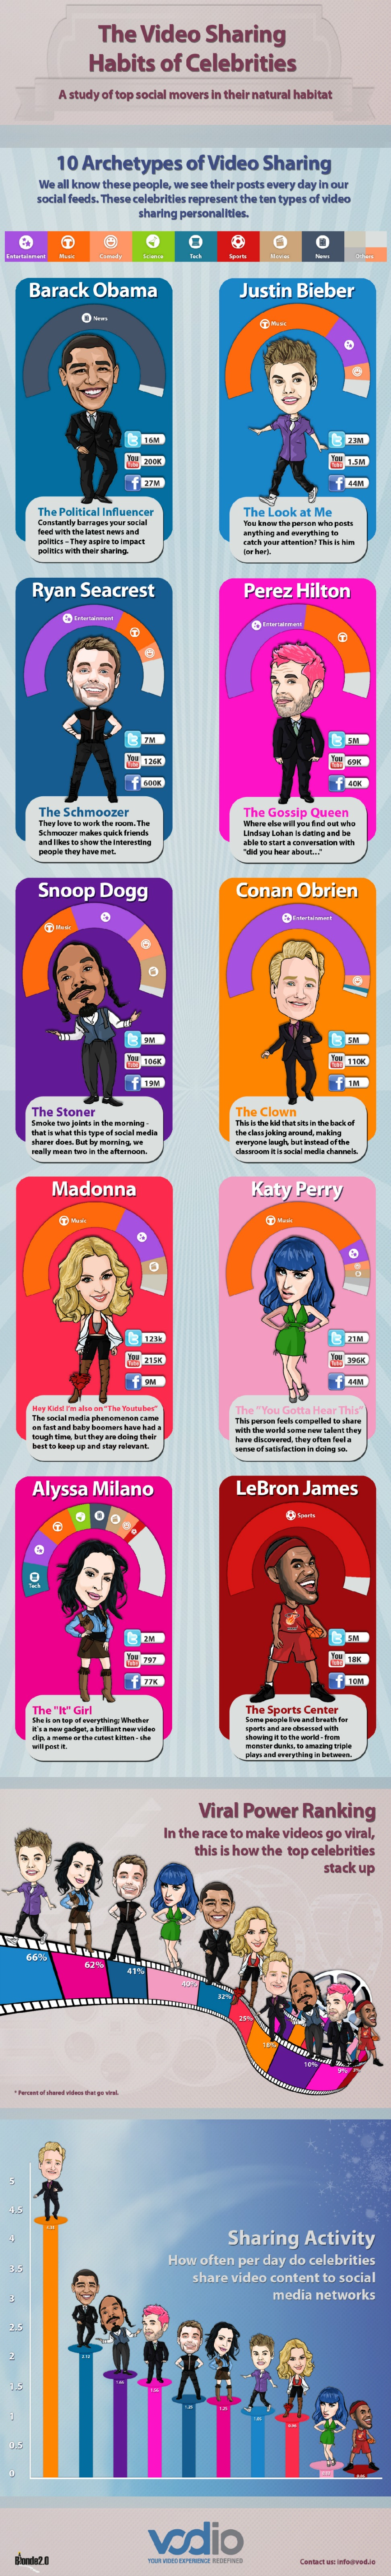 How Social Media Savvy Celebrities Share Video [INFOGRAPHIC]